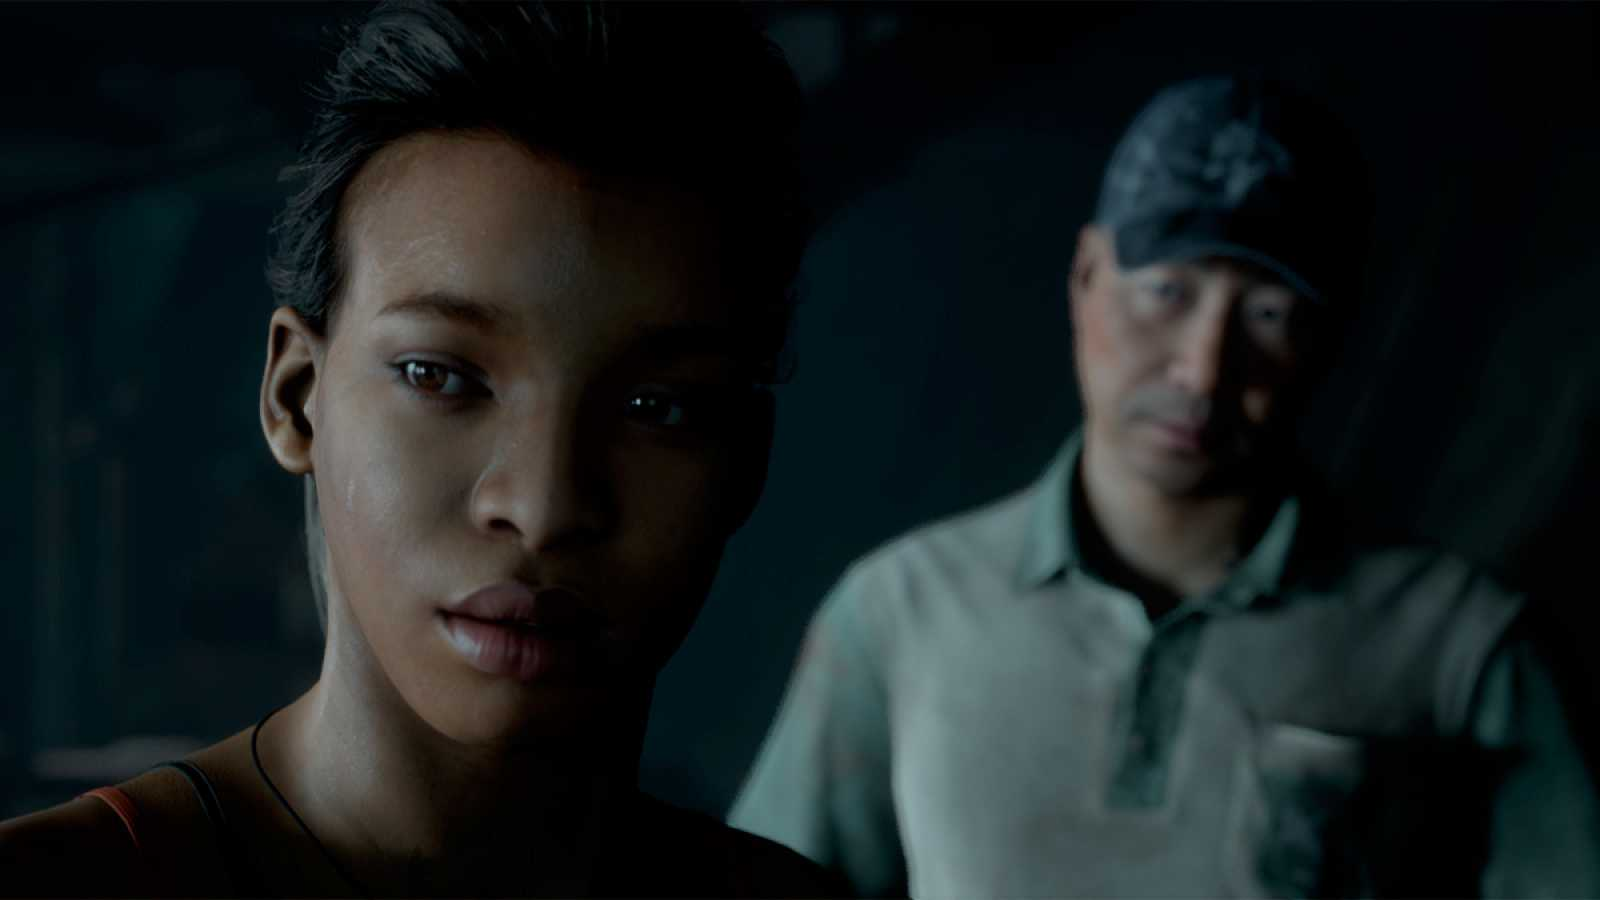 Gamescom 2018 | Tráiler de Man of Medan, la primera entrega de la antología The Dark Pictures